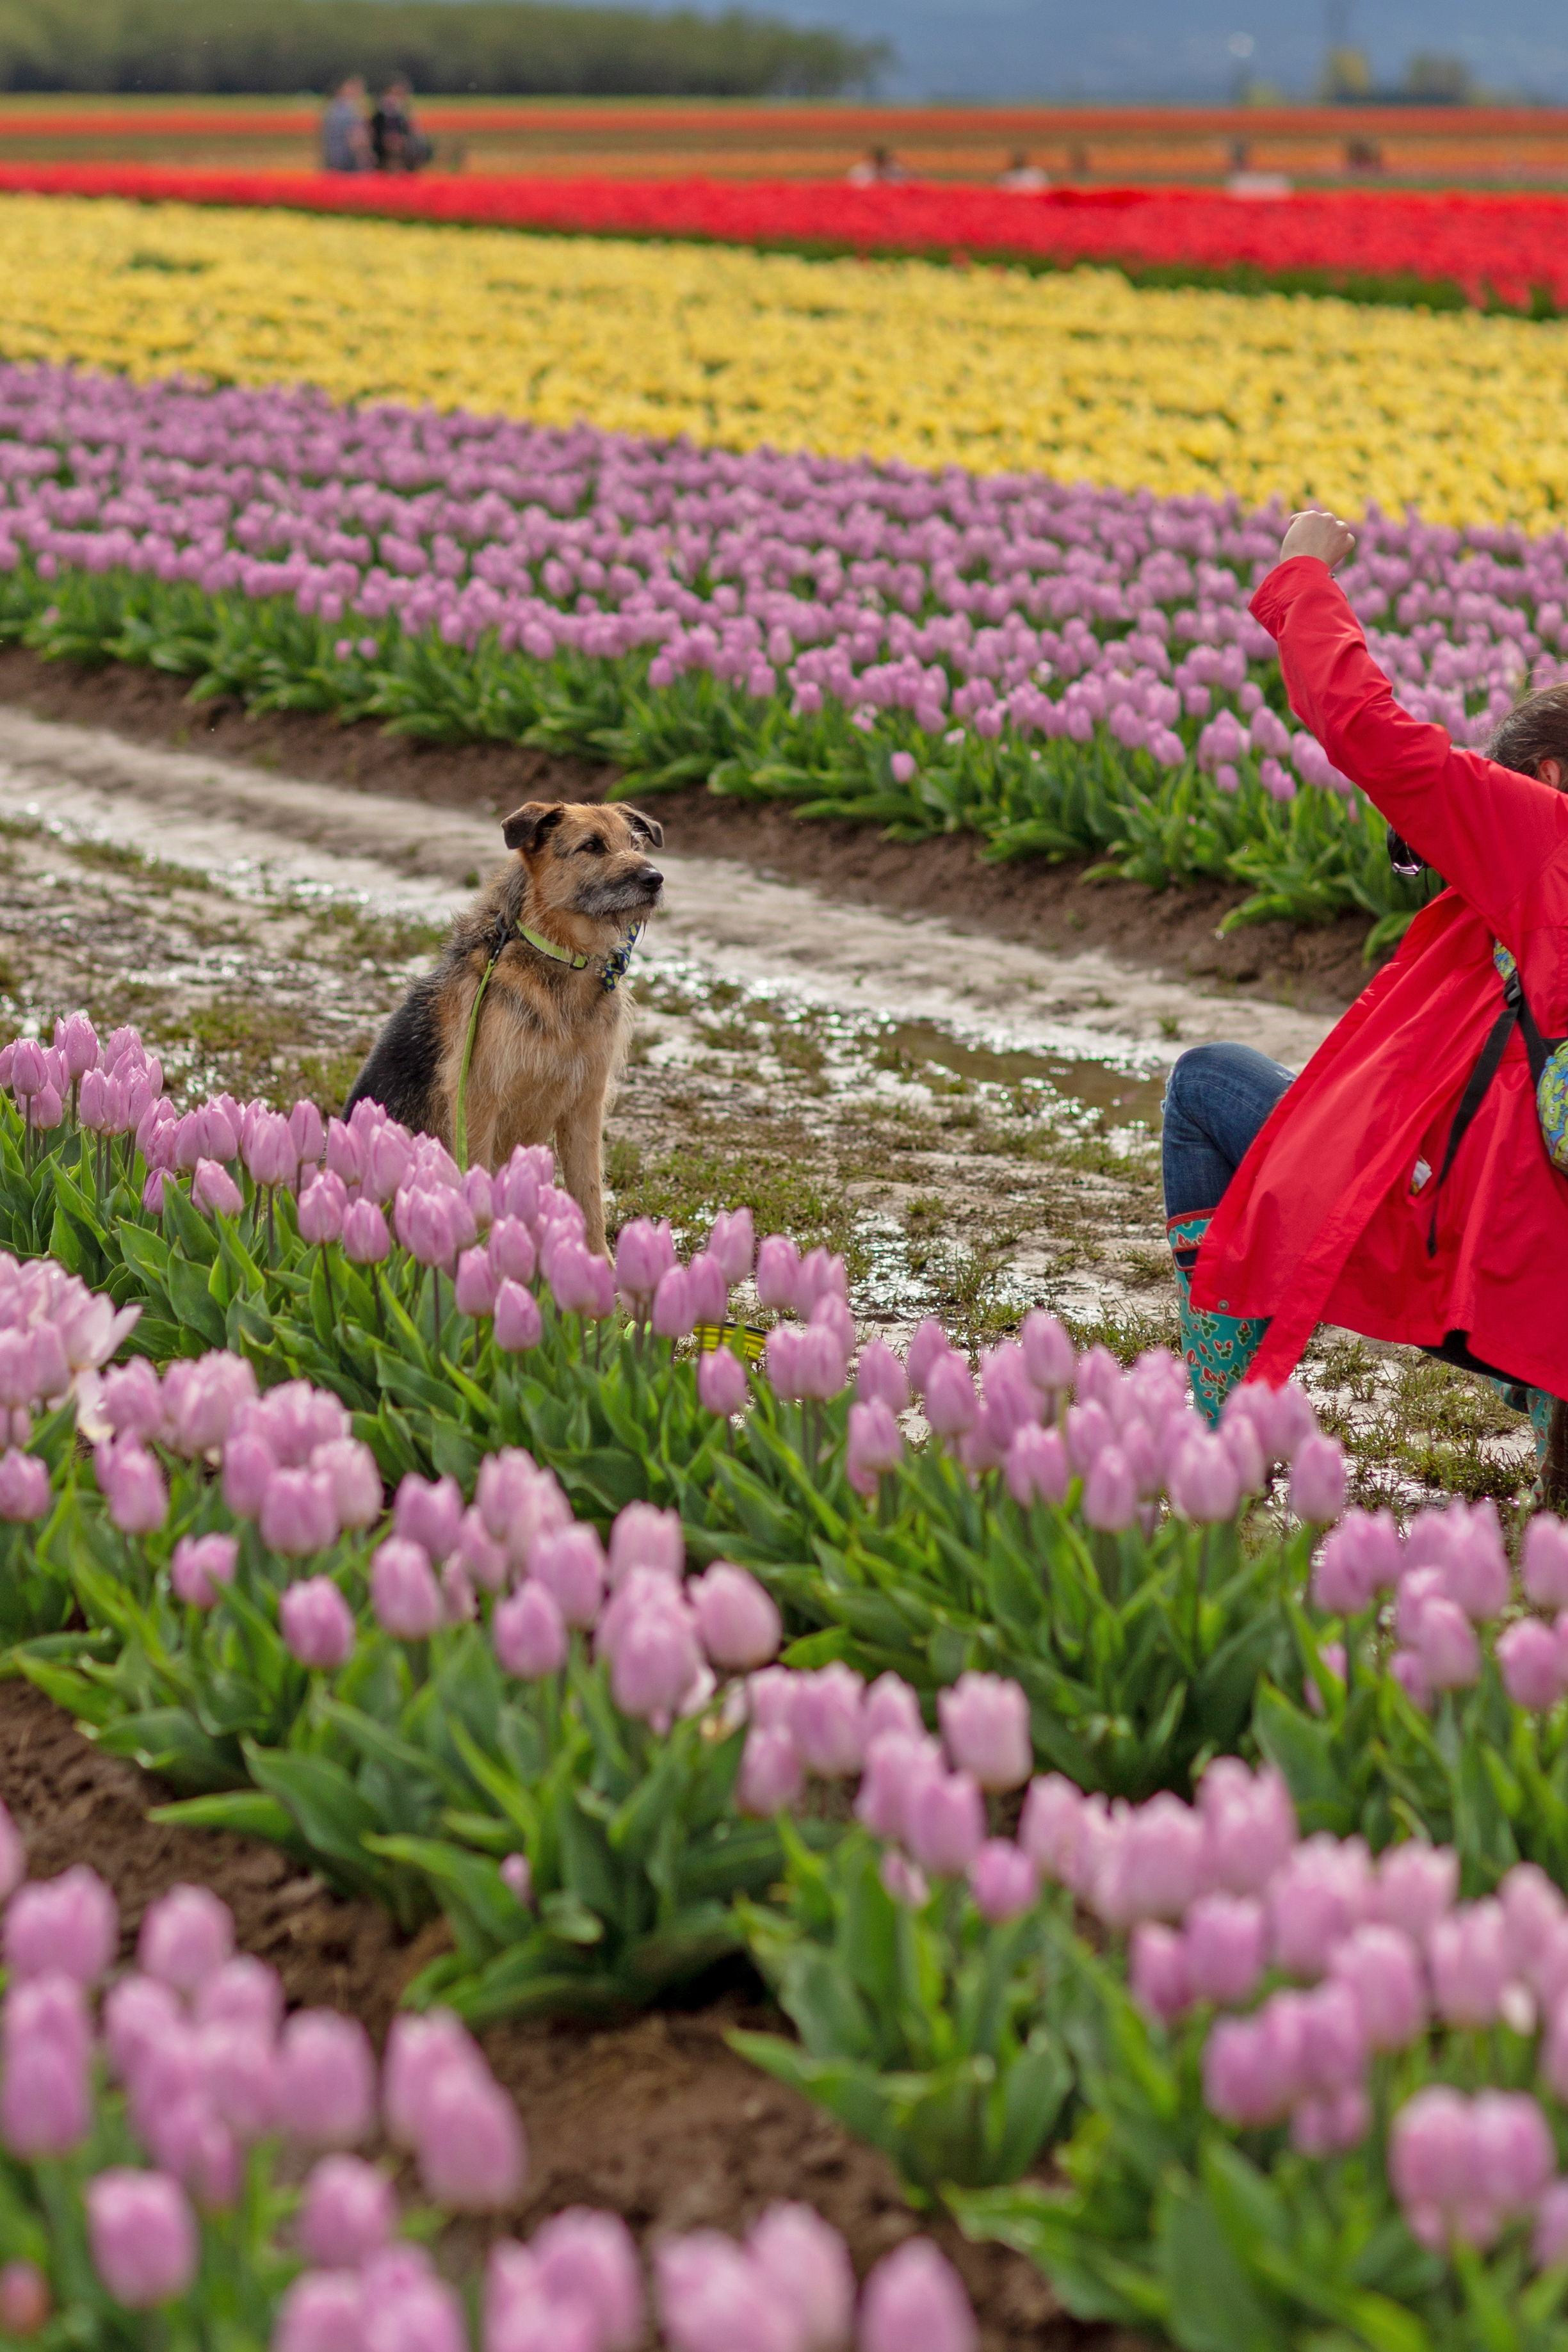 A dog poses for its owner in the tulip fields